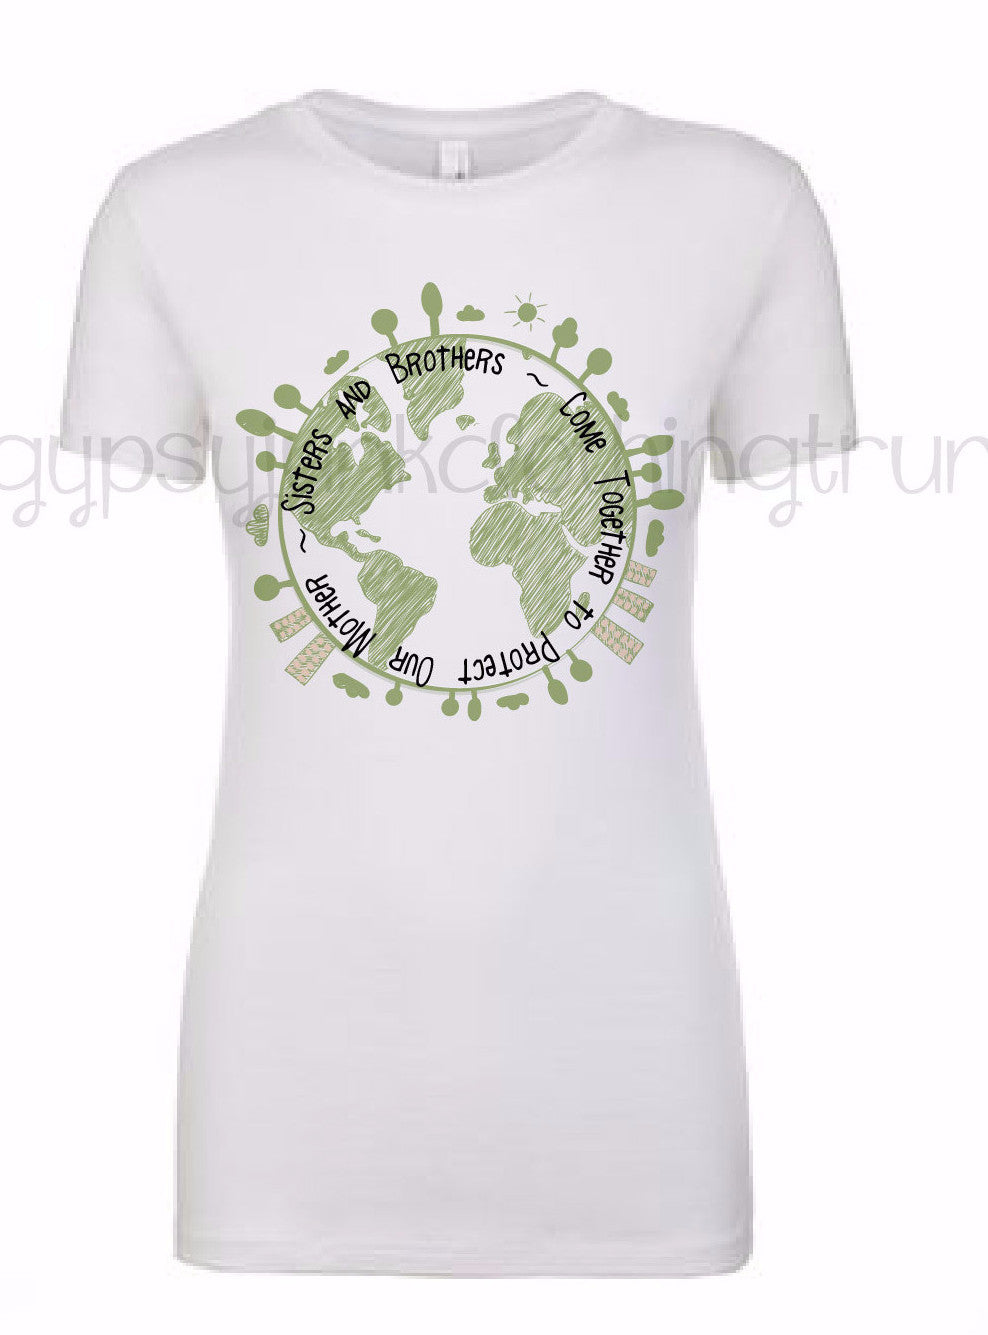 Earth Day Shirt - Save the Earth Top